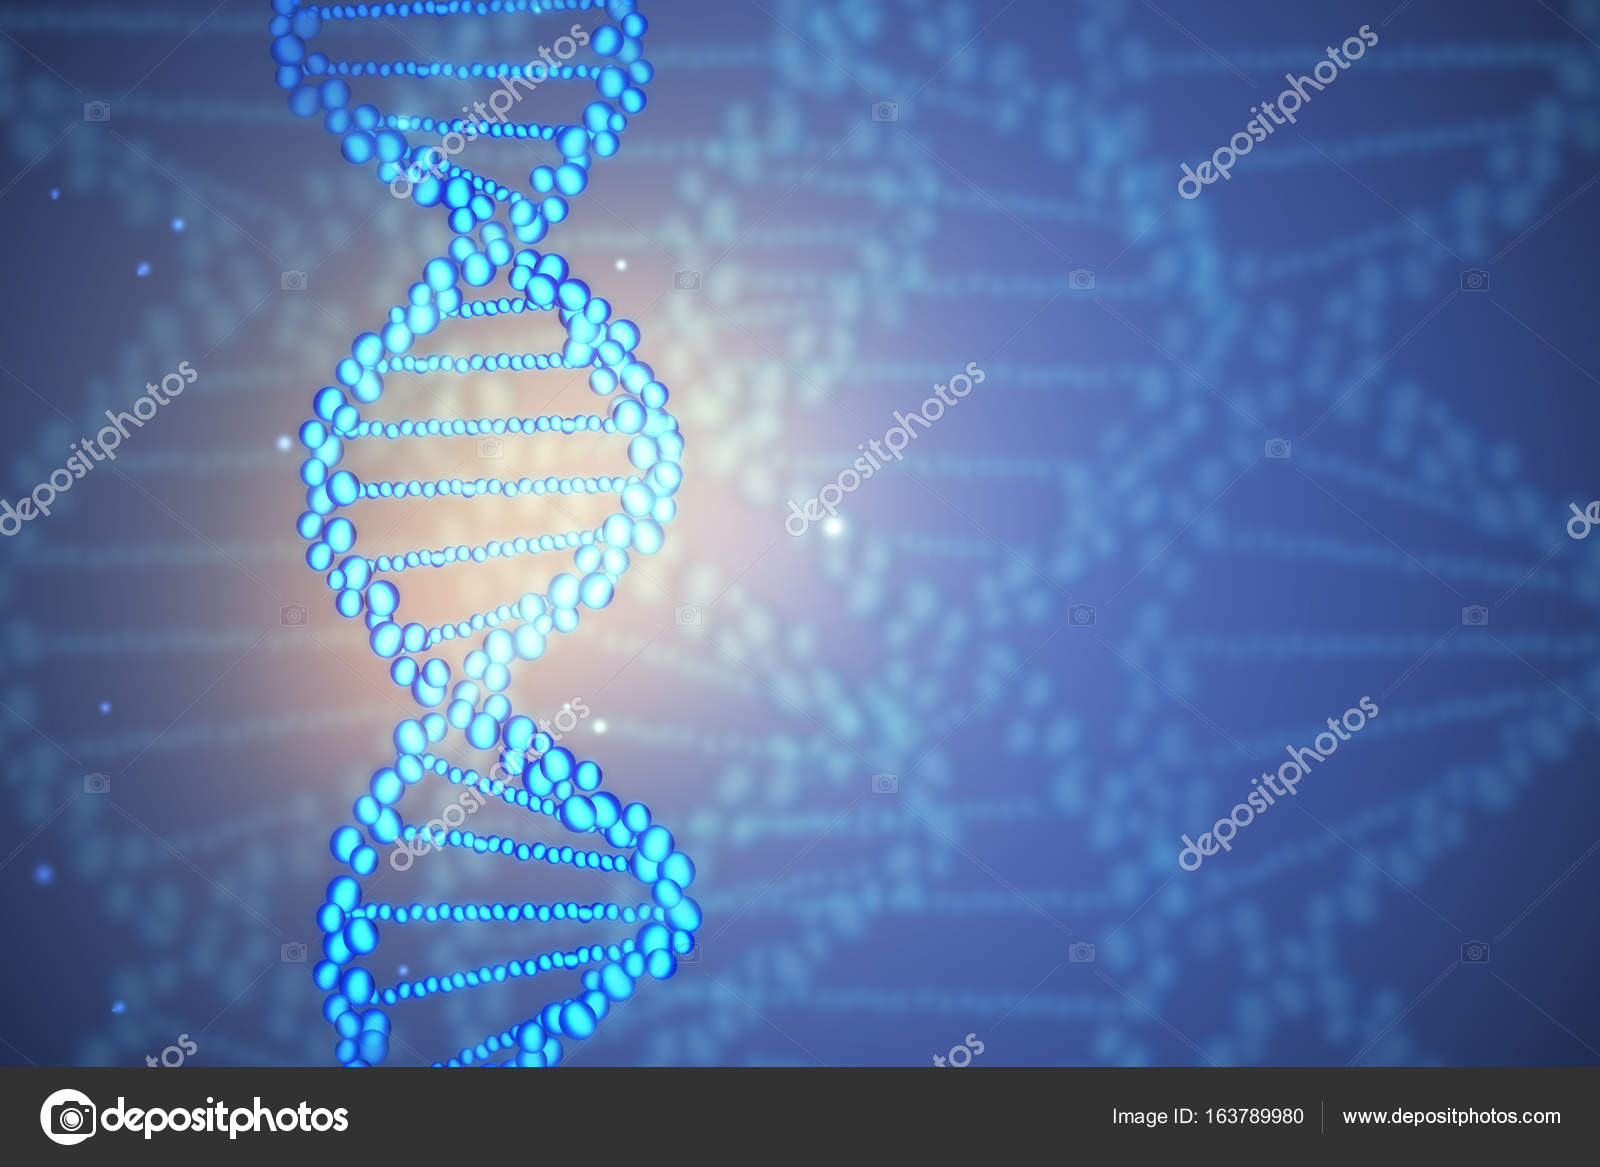 Abstract Blue DNA Molecule Wallpaper Medicine Innovation And Future Concept 3D Rendering Photo By Peshkova